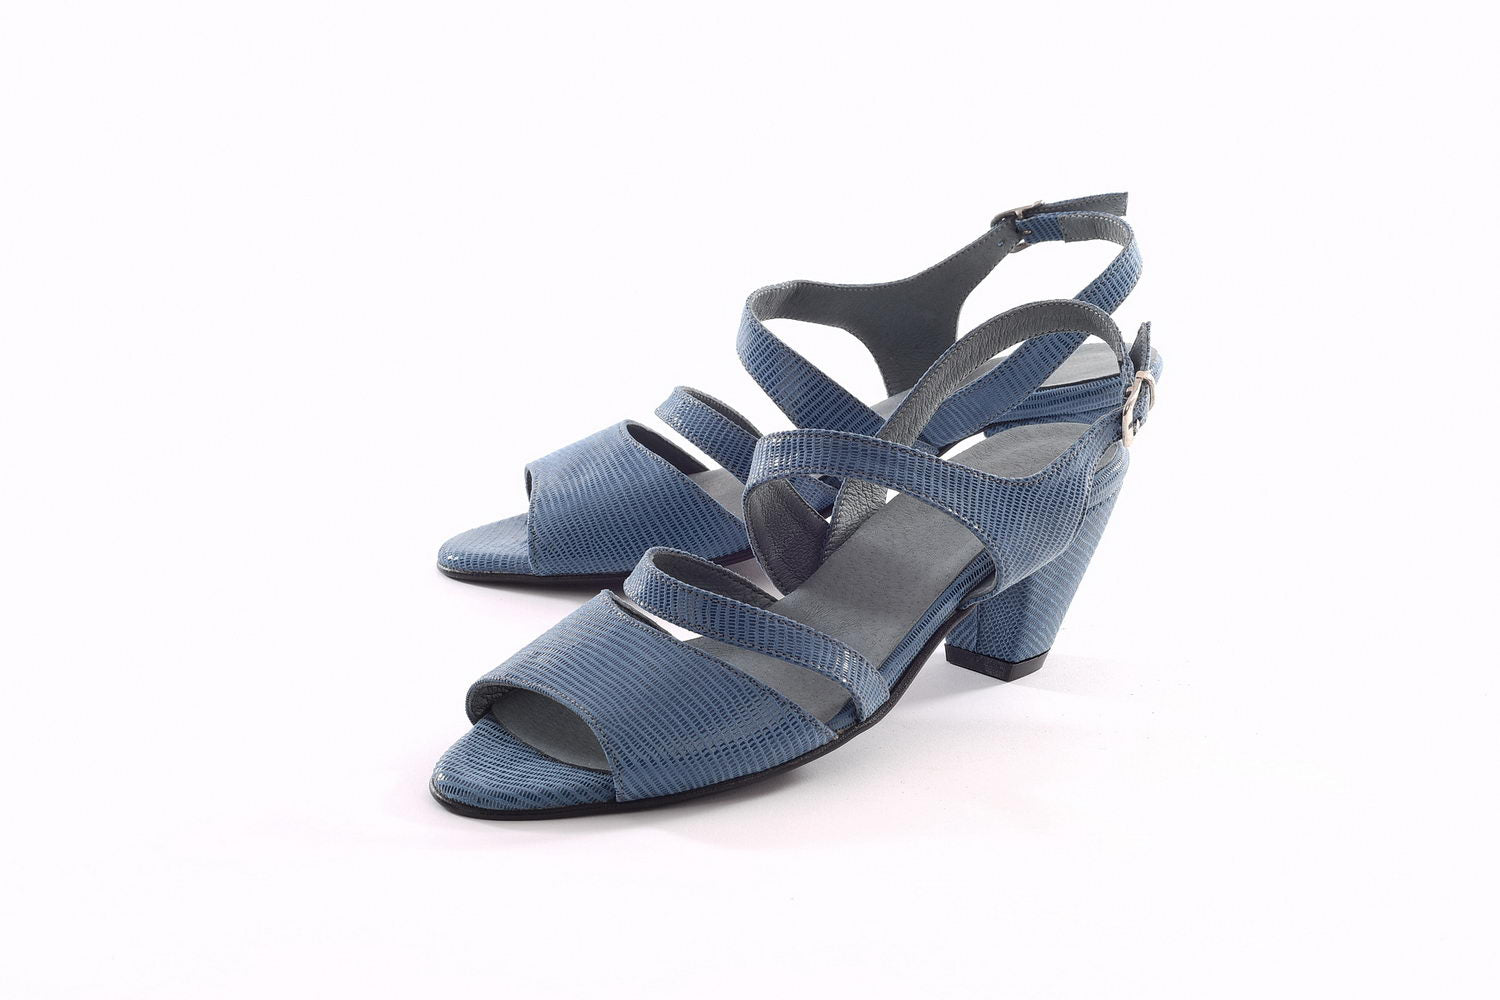 May Heeled Sandals - Shiny Blue